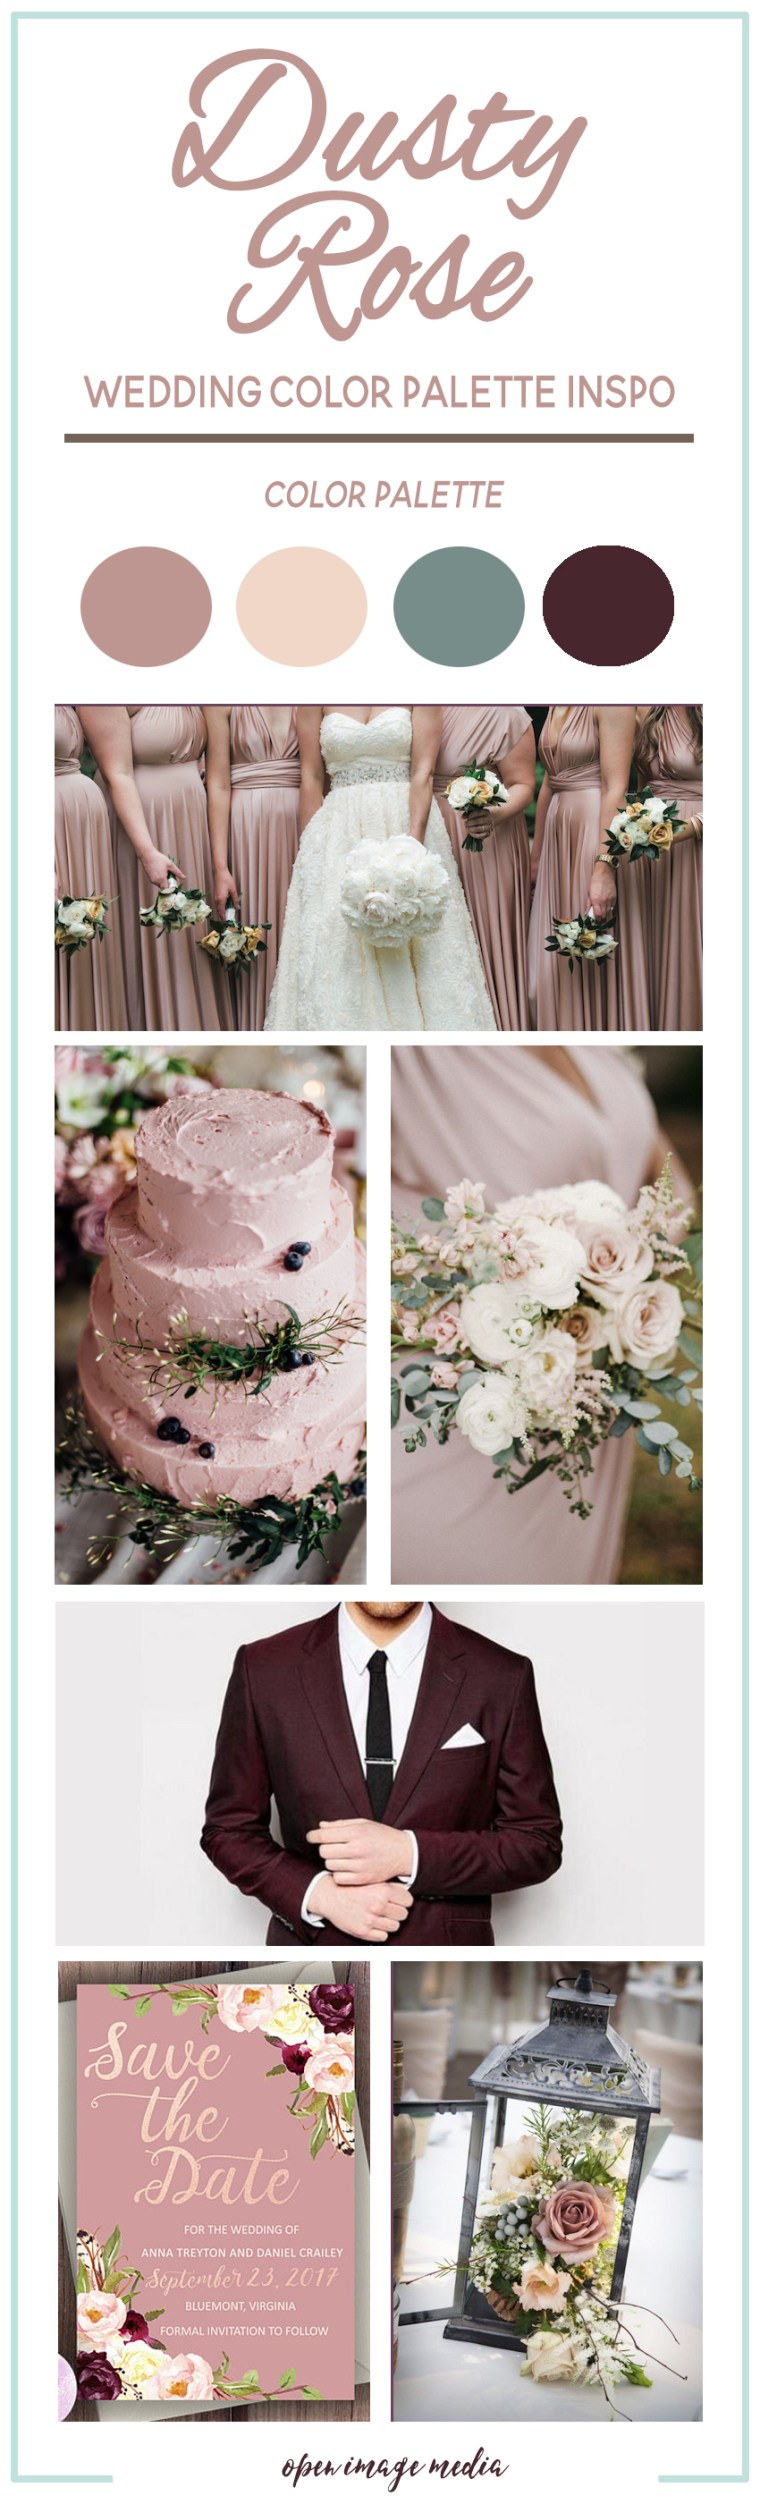 Dusty rose wedding color palette inspiration open image media dusty rose wedding color palette inspiration junglespirit Gallery